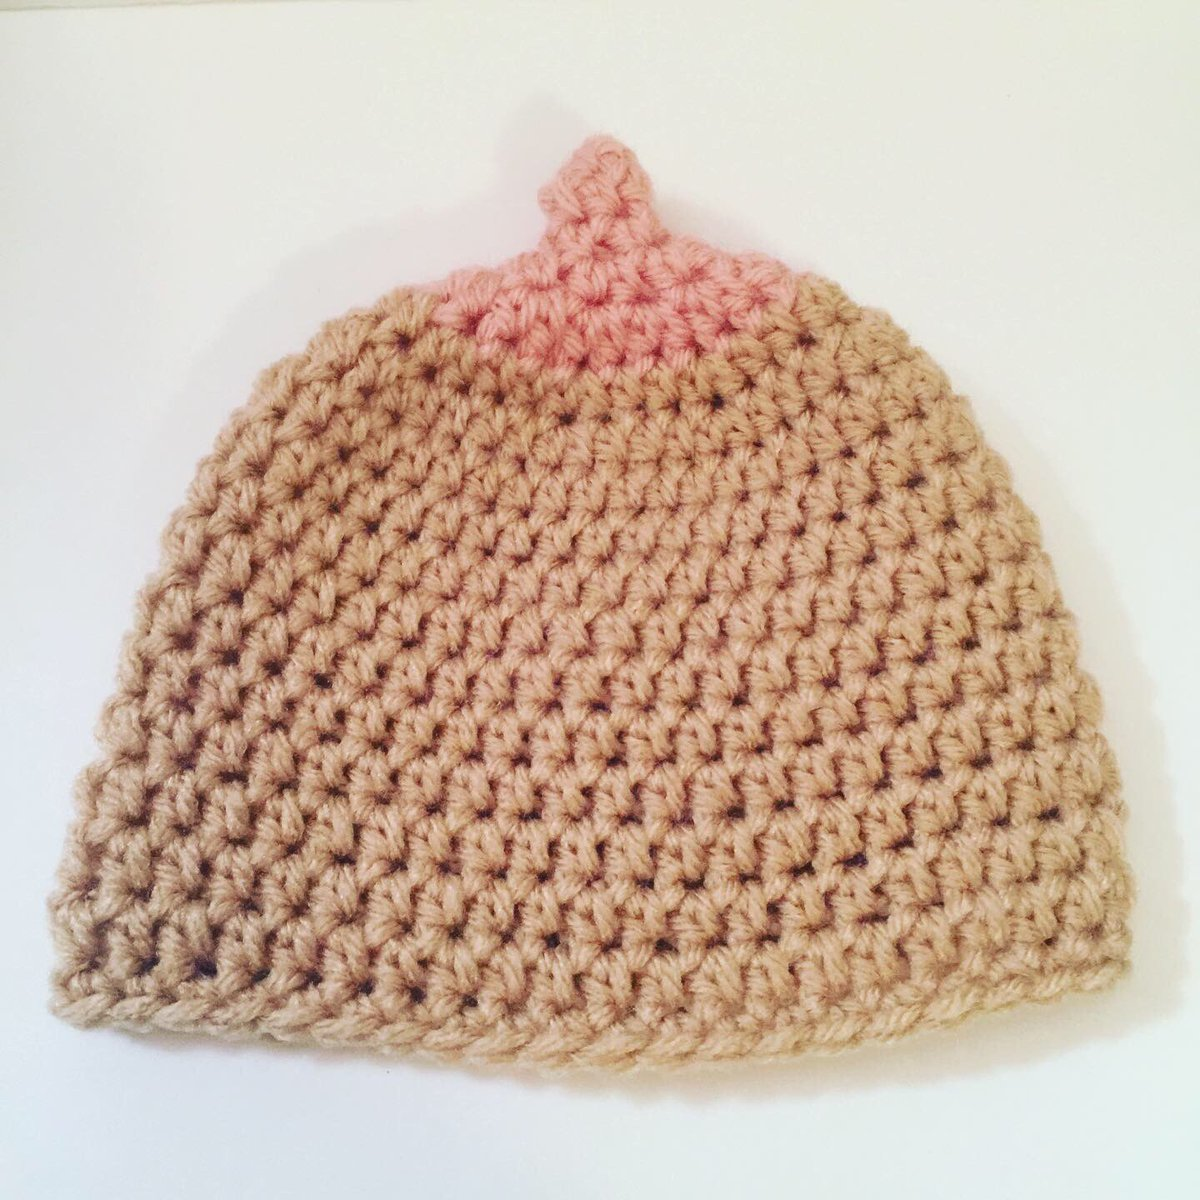 This #boob #beanie is off to it's new home. Listed in my #etsy #shop. I'm also working on getting the #free #pattern out. #kittyskreationsboutique #handmade #homemade #crochet #crocheted #hat #newborn #baby #nursing #breast #breastfeeding #gift #present #babyshowergift